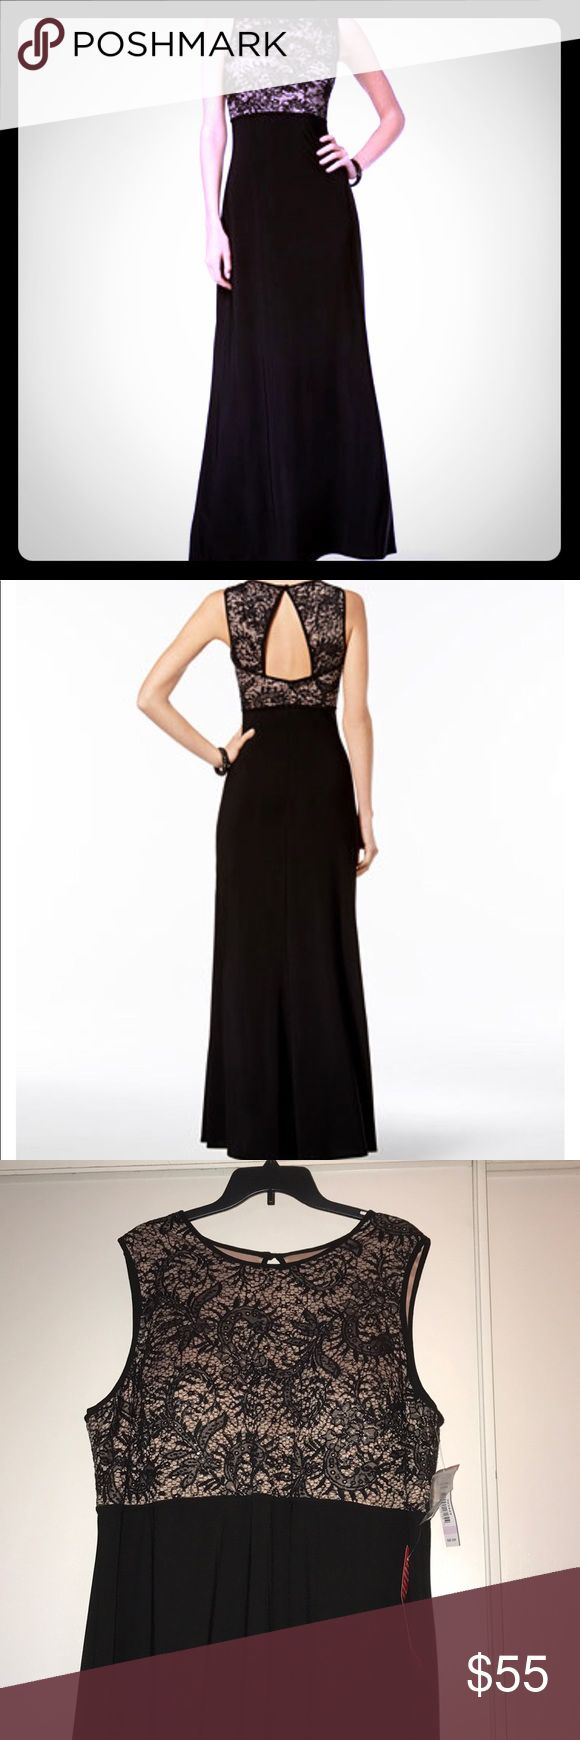 Perfect for Valentines Day ❤️ NWT gown 22W NWT NW Woman gown size 22W. Nude/Black lace top and flowing bottom. Flattering cutout in back. Fits like a dream, makes the curves look good and the fitted top is stretchy so it accommodates the bust. NW Woman Dresses Maxi